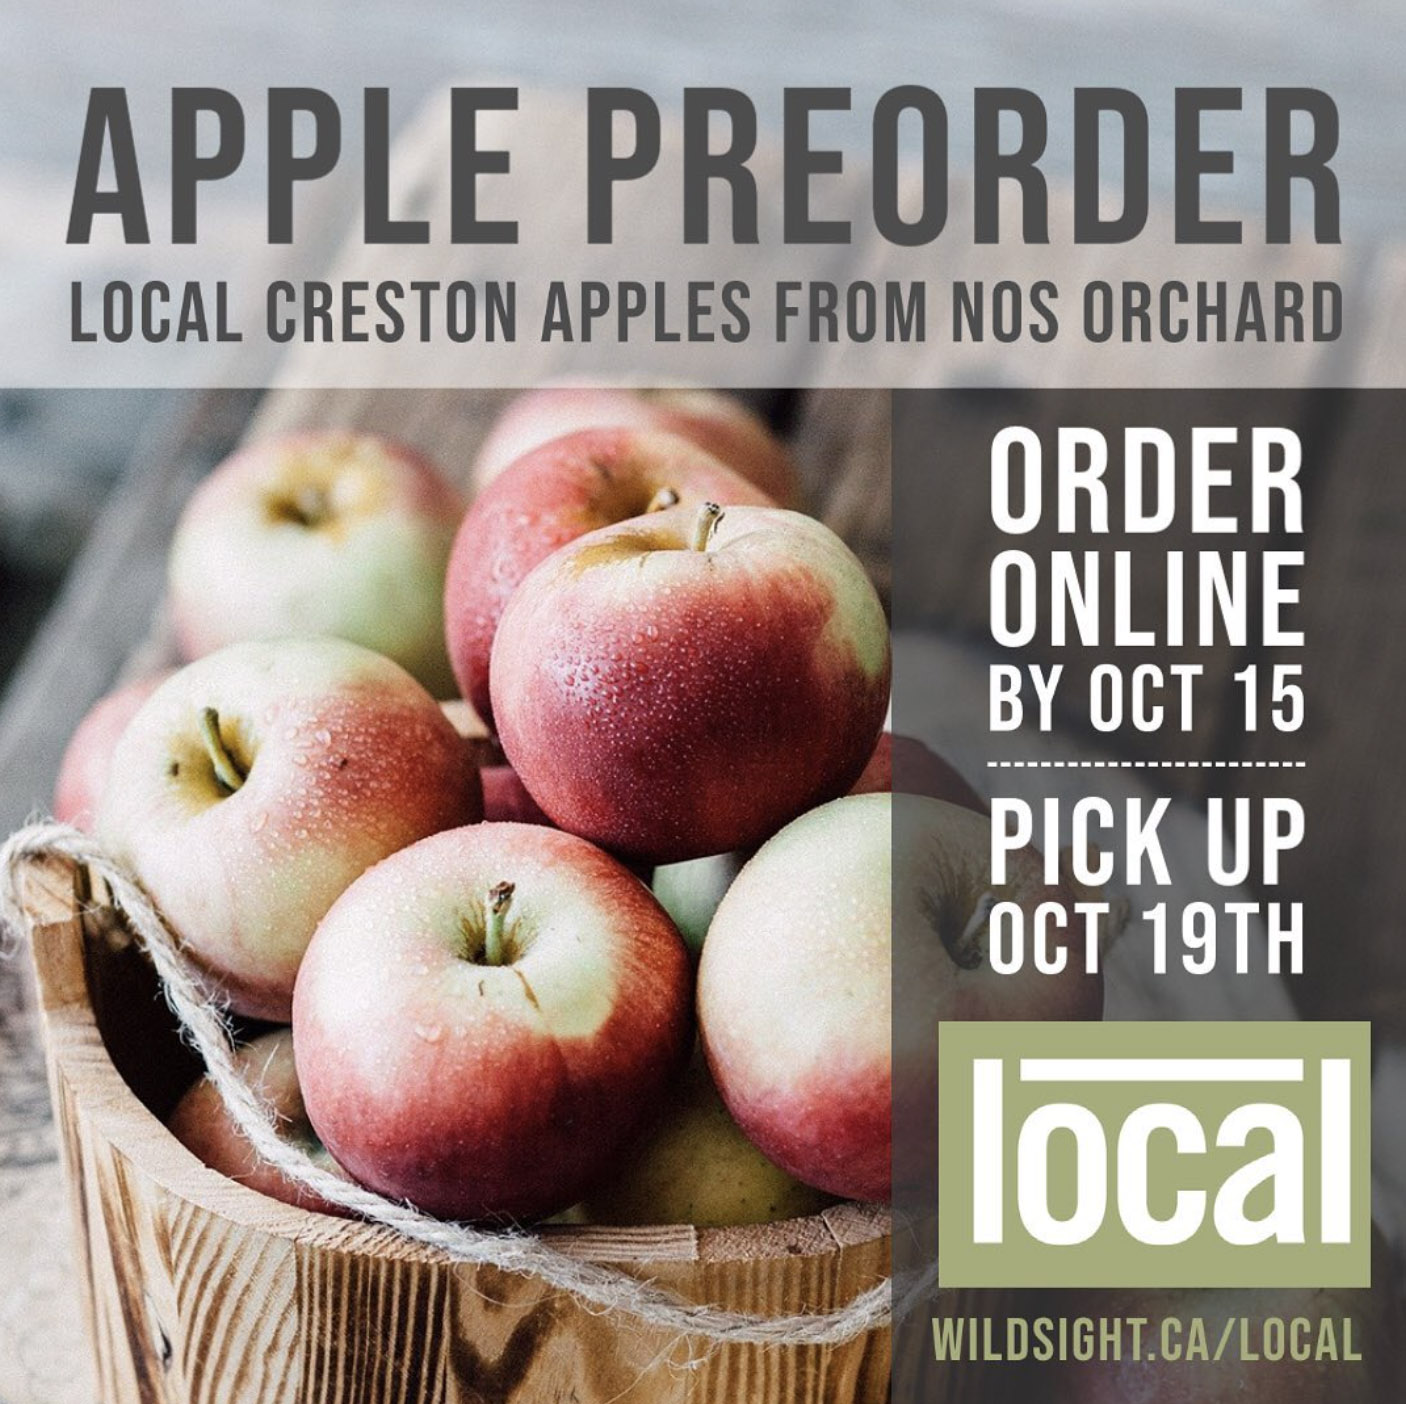 Preorder Apples at Local